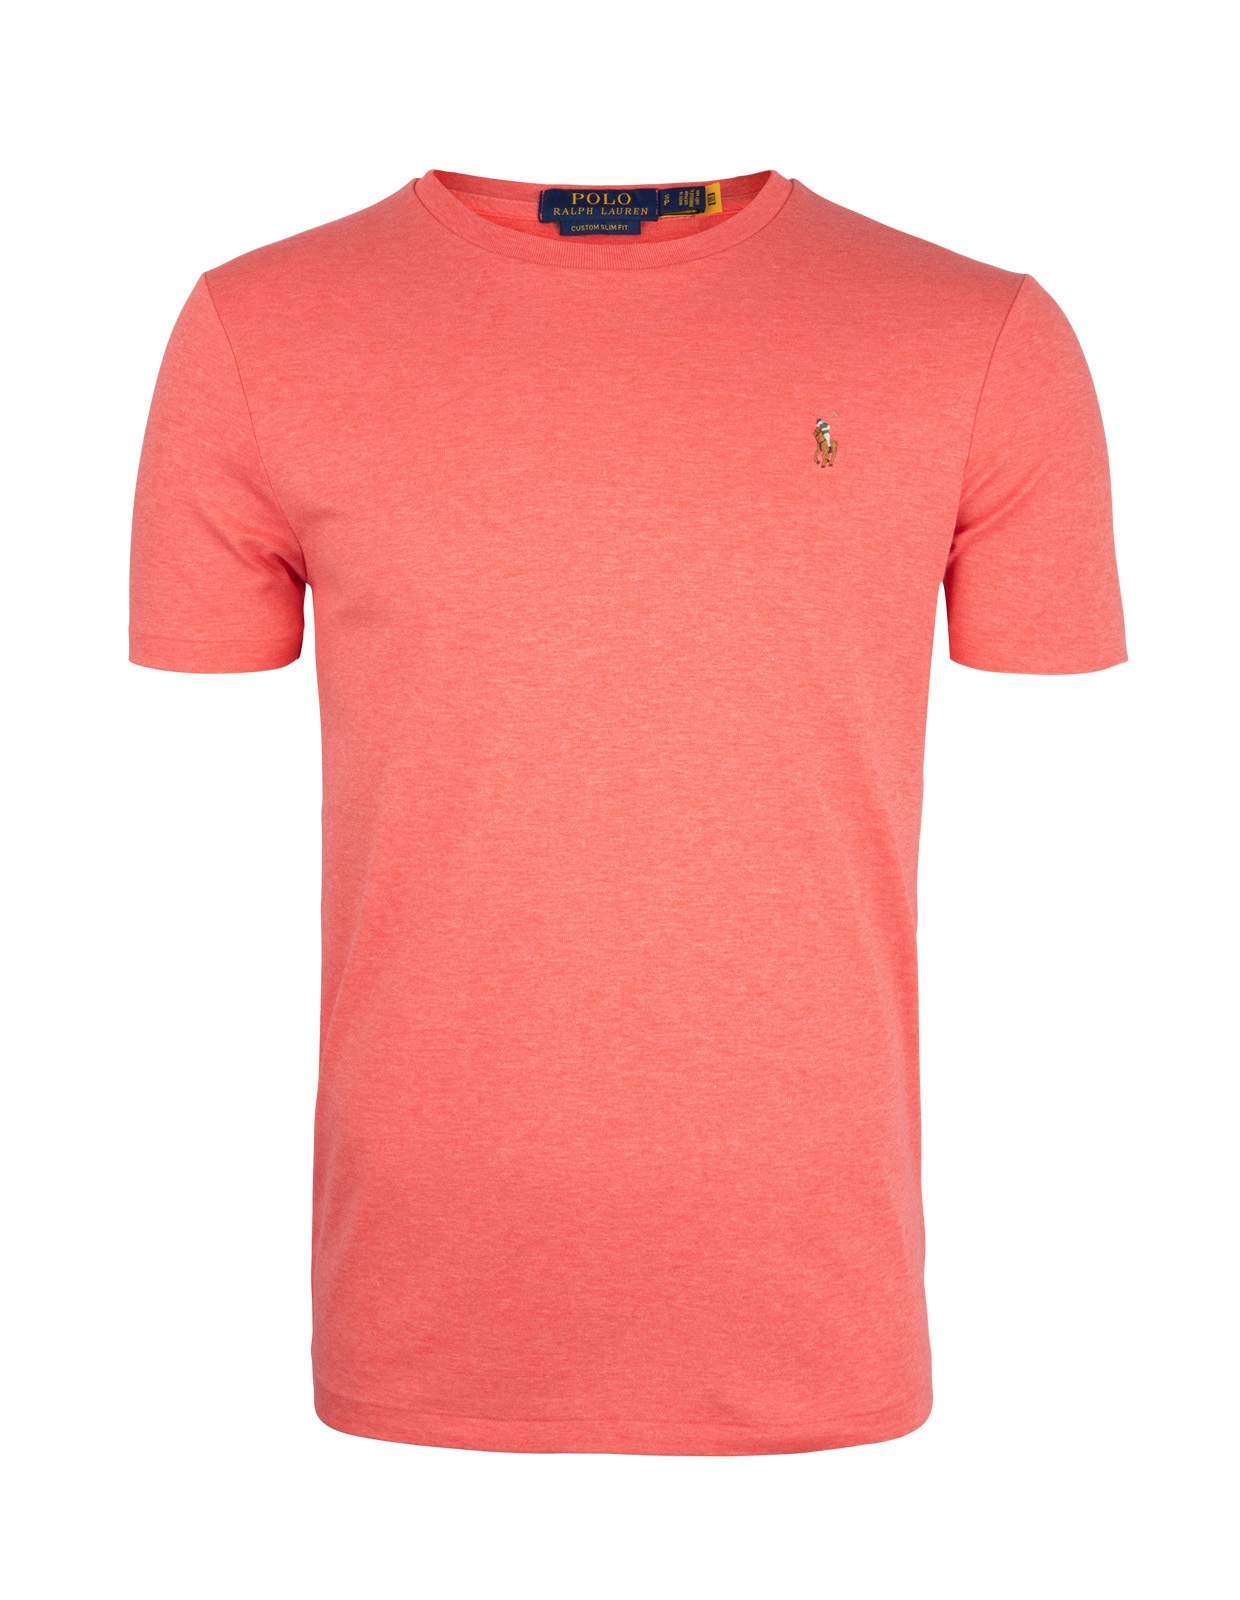 Luxury Pima Cotton Crew Neck Tee Highland Rose